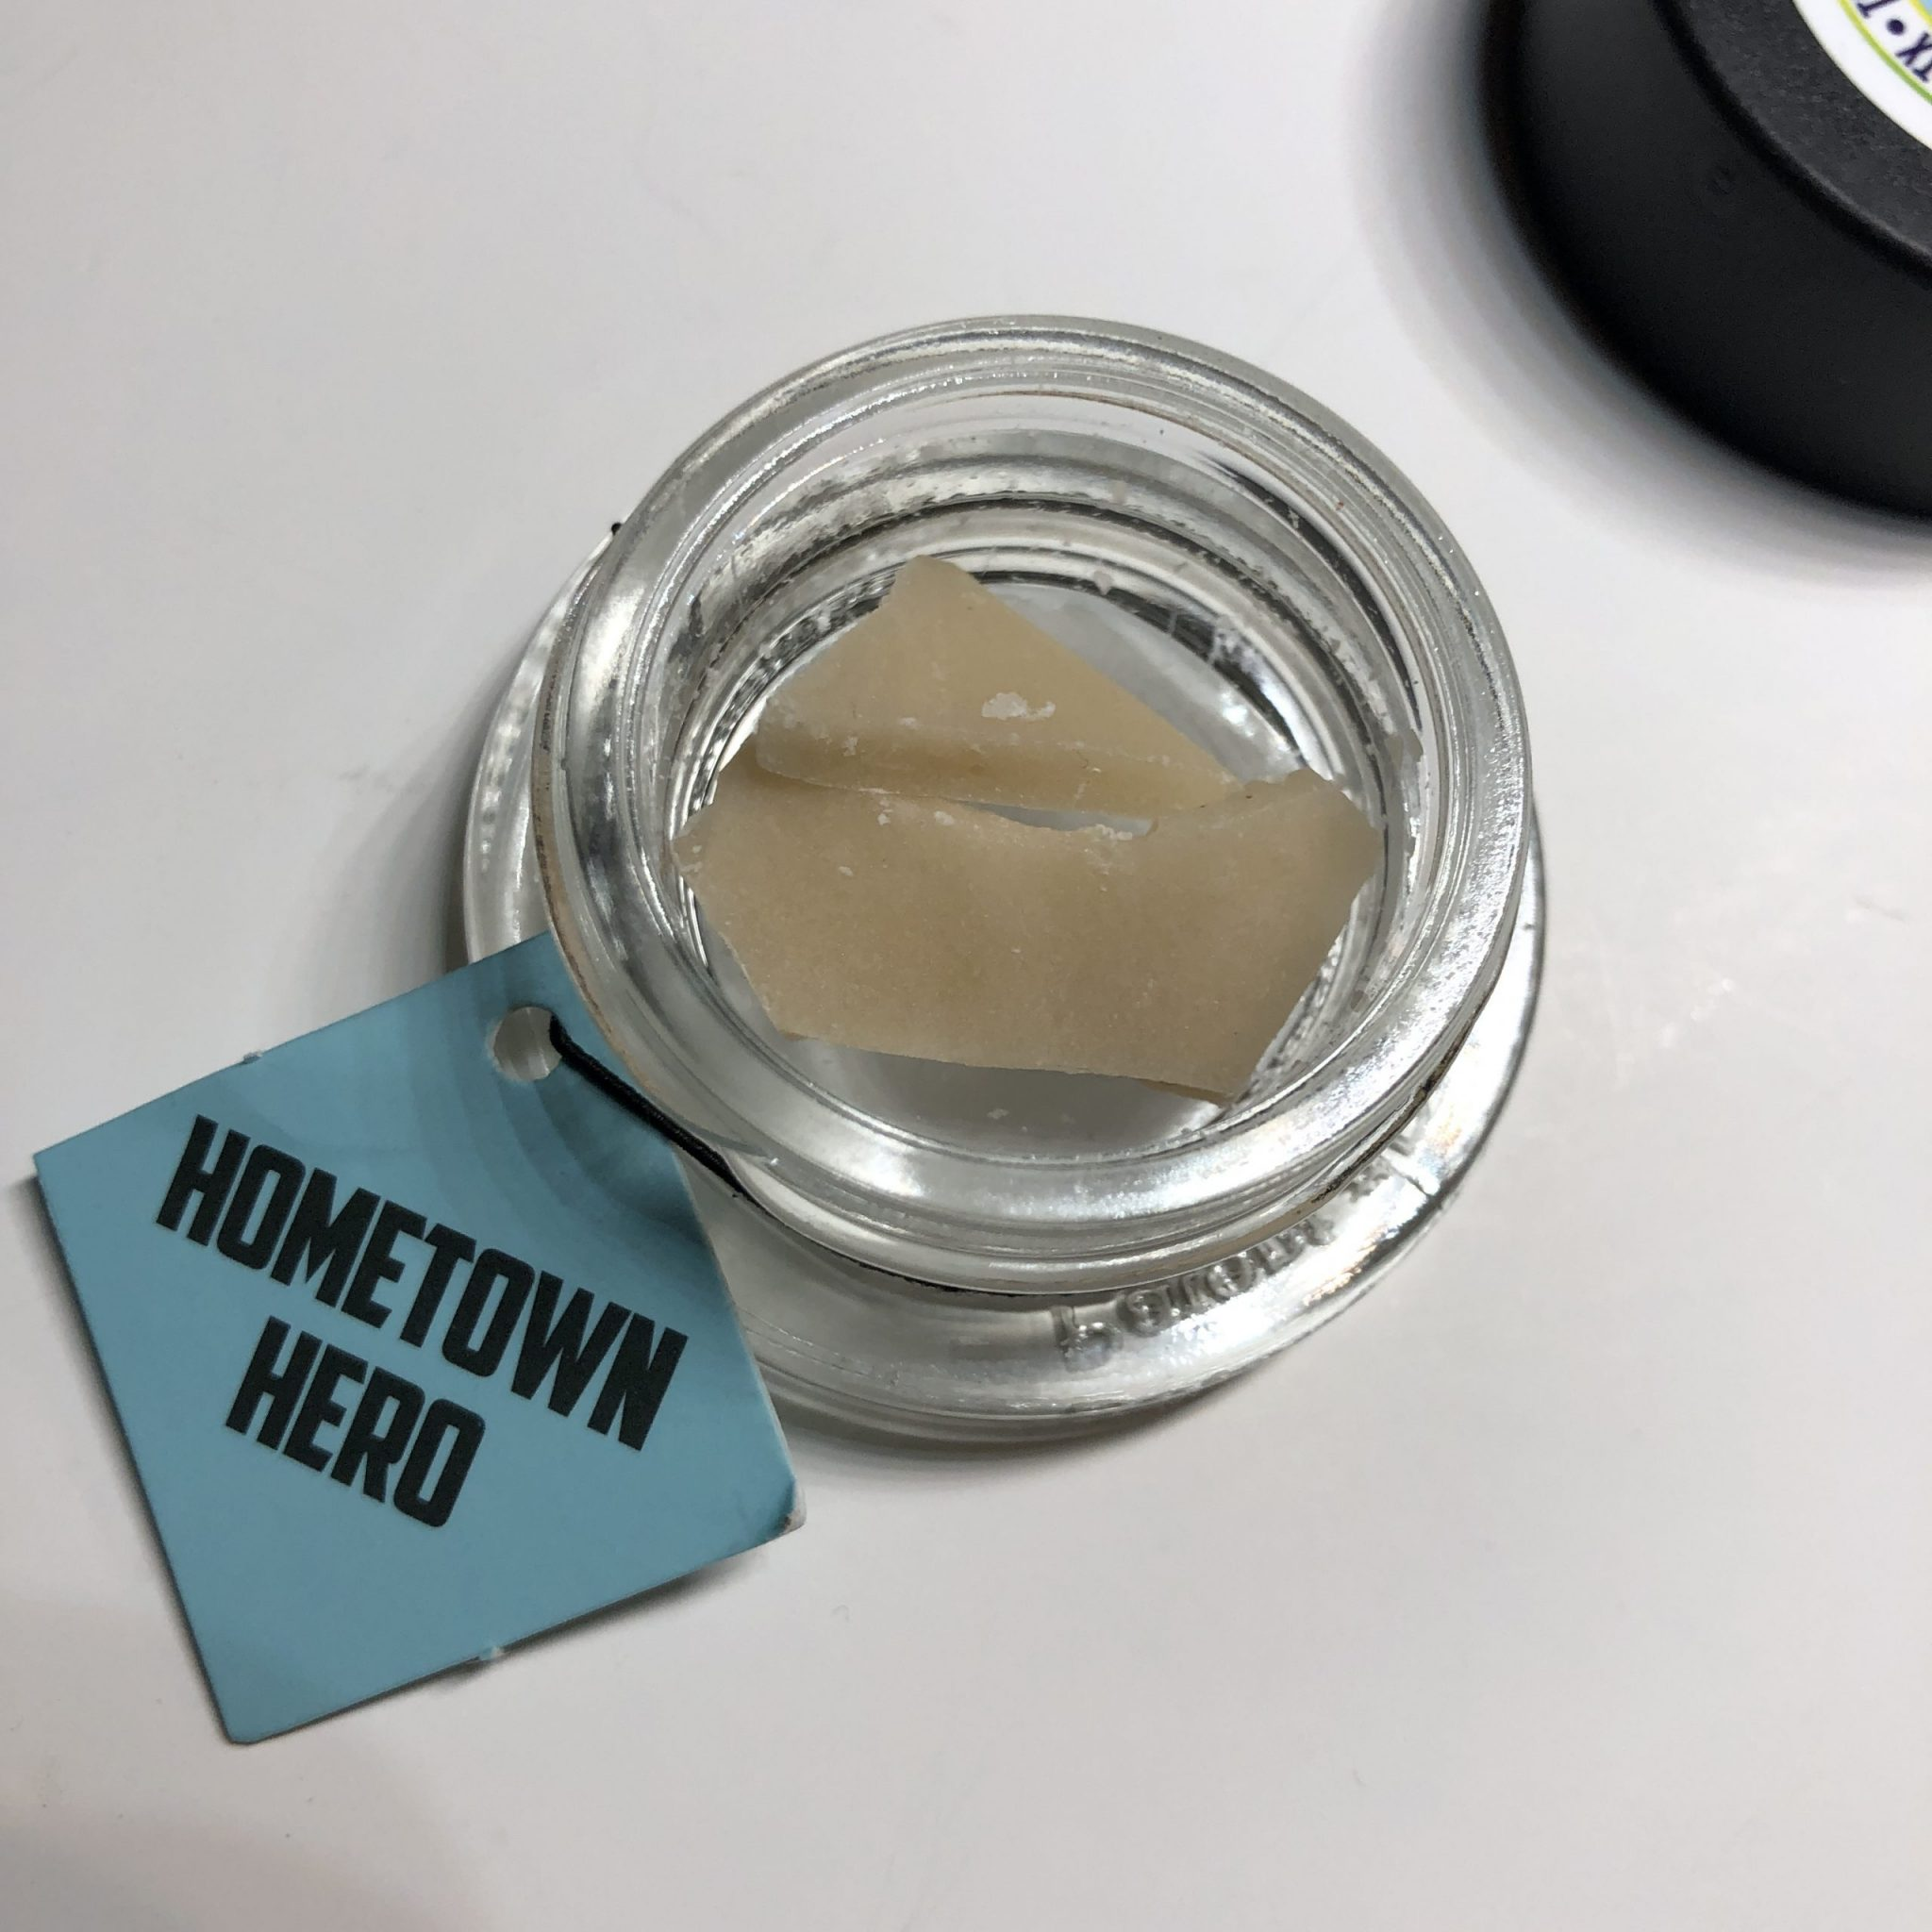 hometown hero concentrate